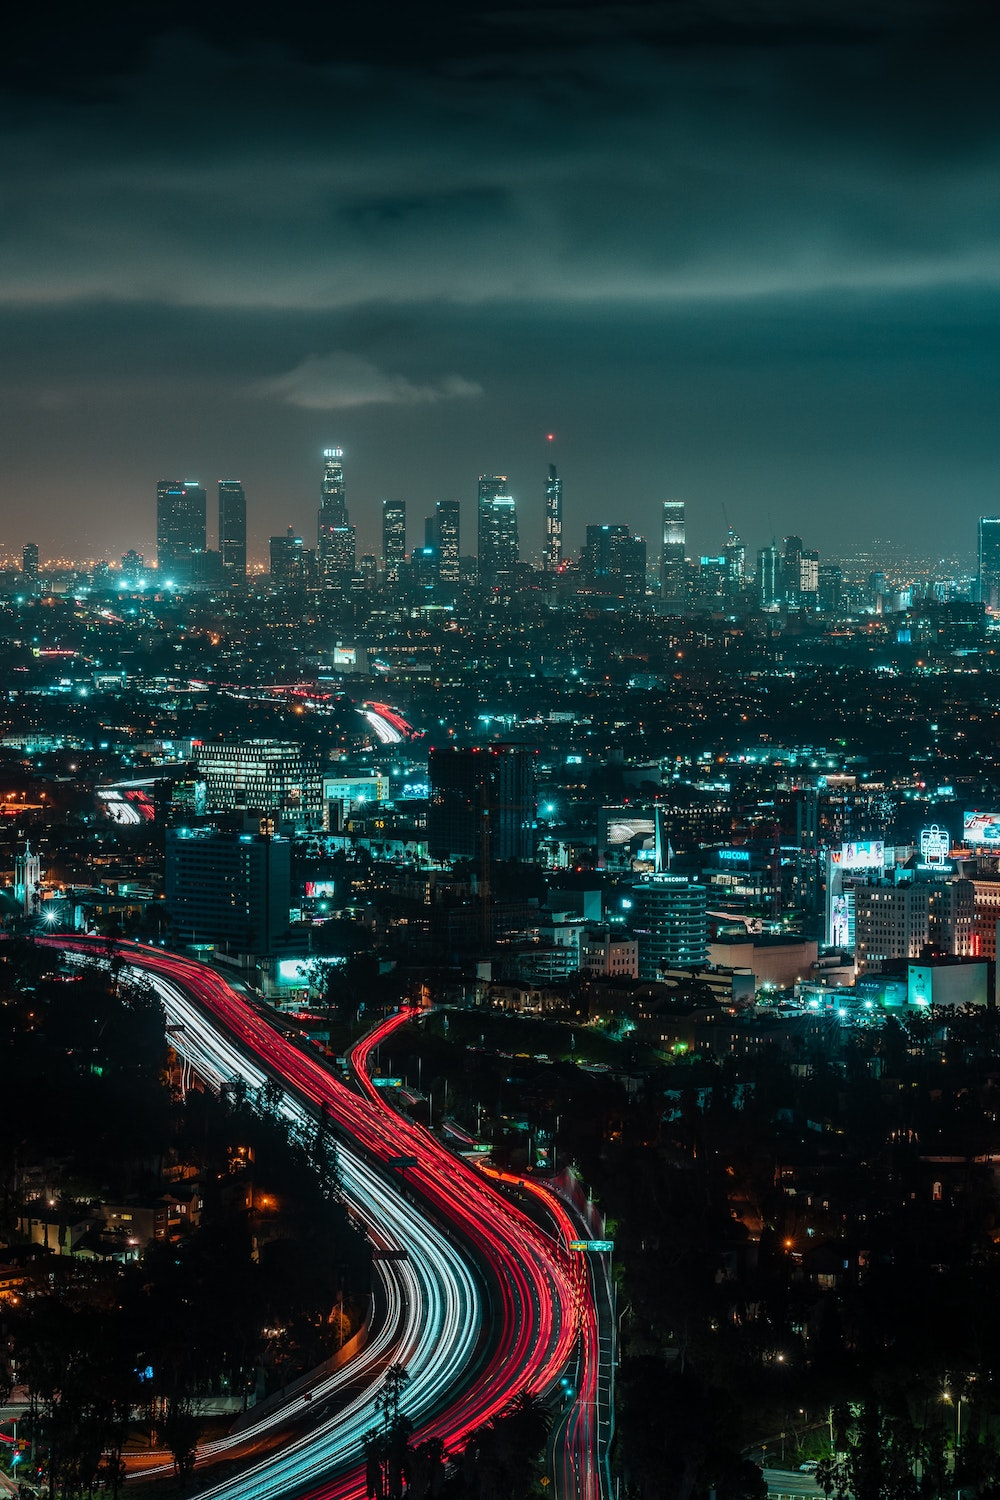 Los Angeles Skyline at Night Mulholland Drive Overlook